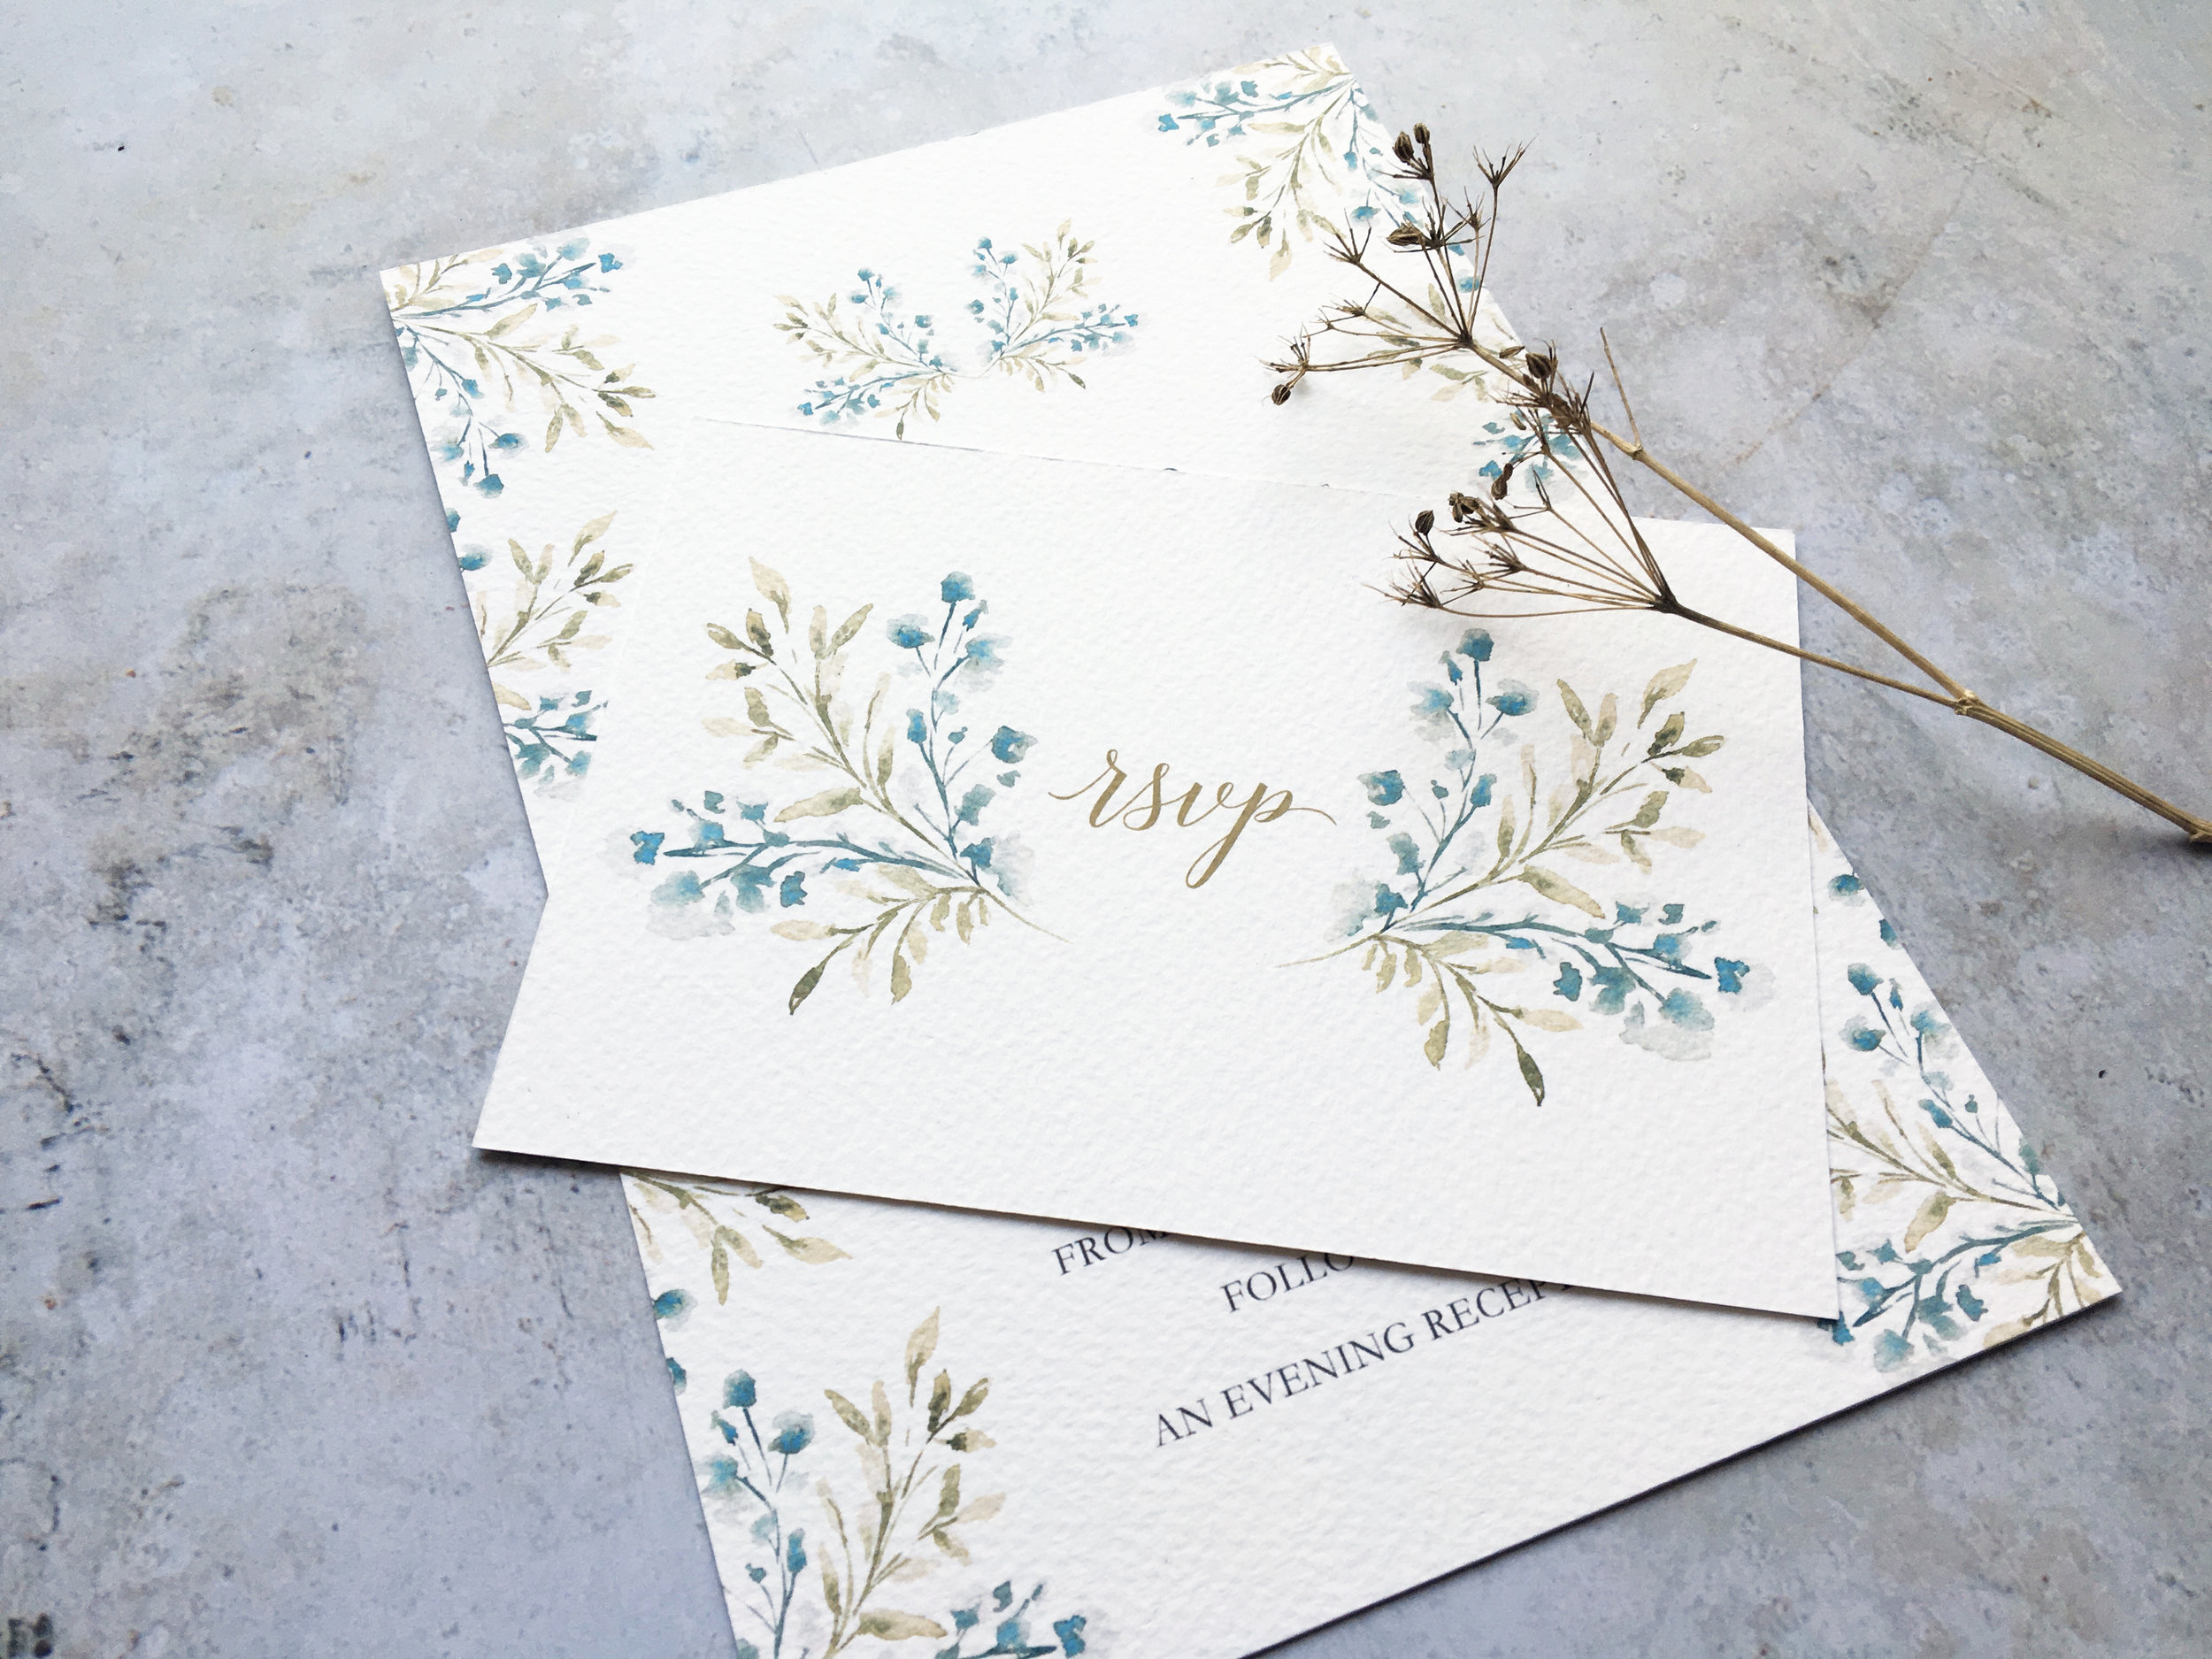 Enchanted invite and rsvp.jpg